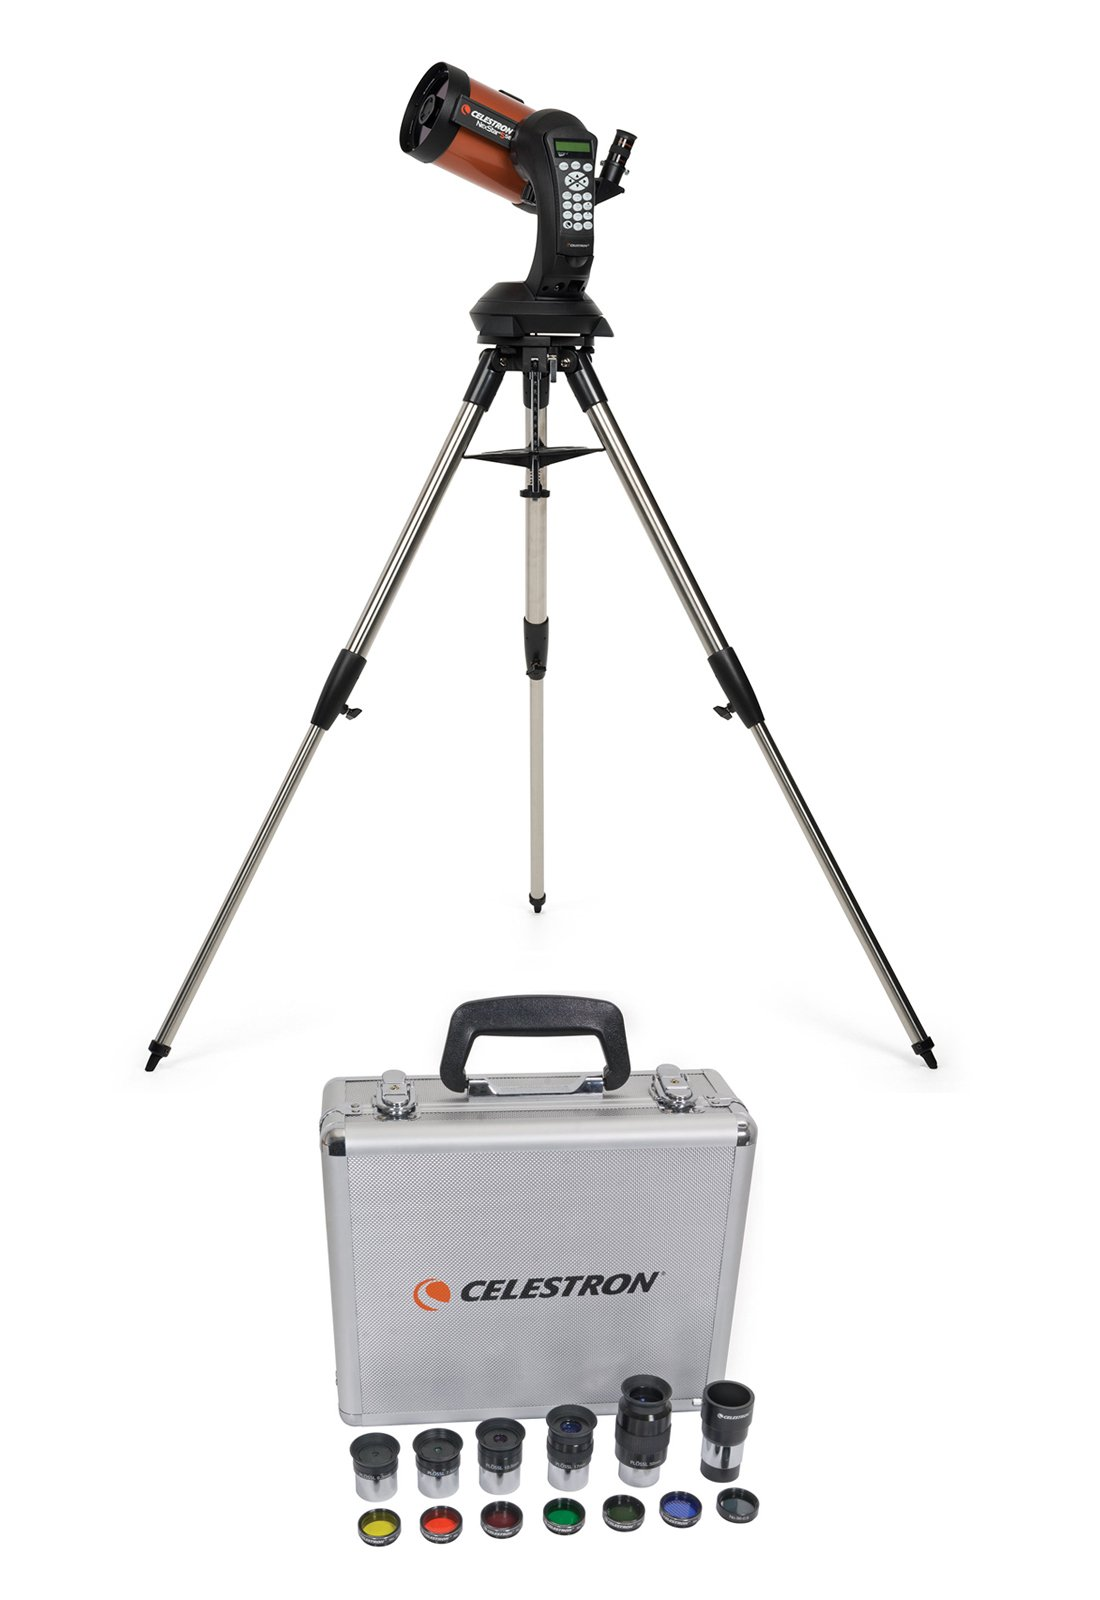 Celestron 5SE Computerized Telescope + Eyepiece/Filter Accessory Kit (1.25 inch)